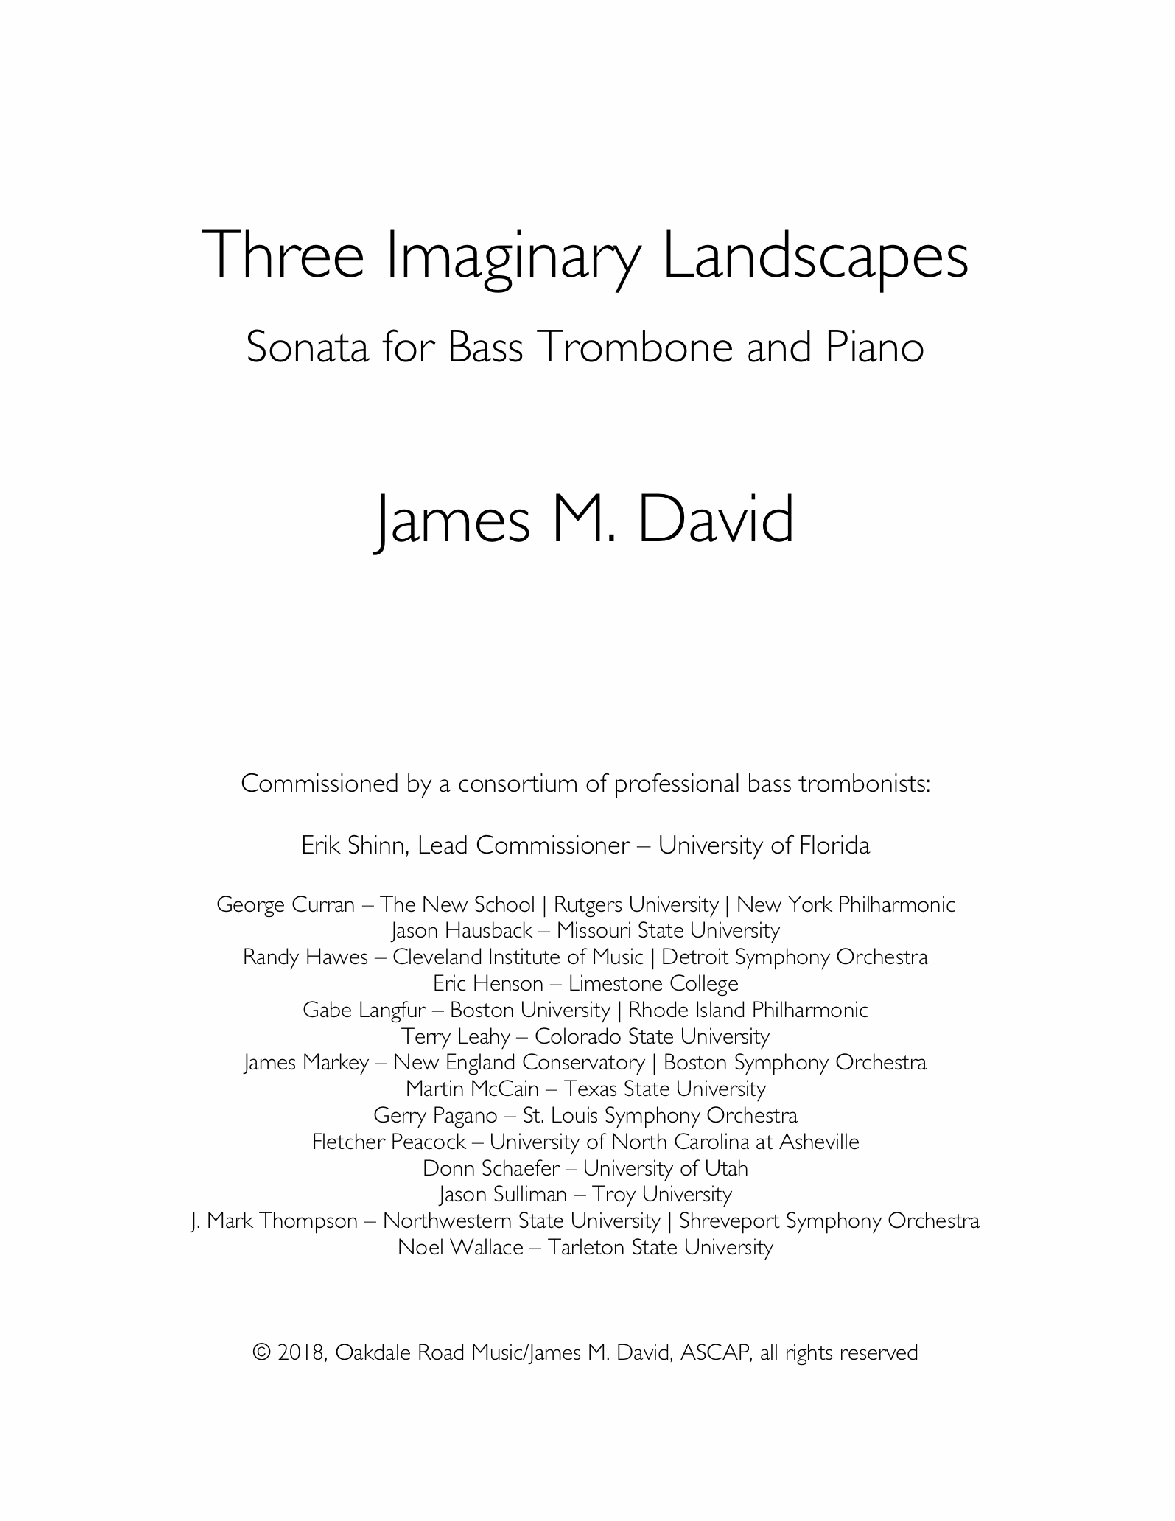 Three Imaginary Landscapes by James David